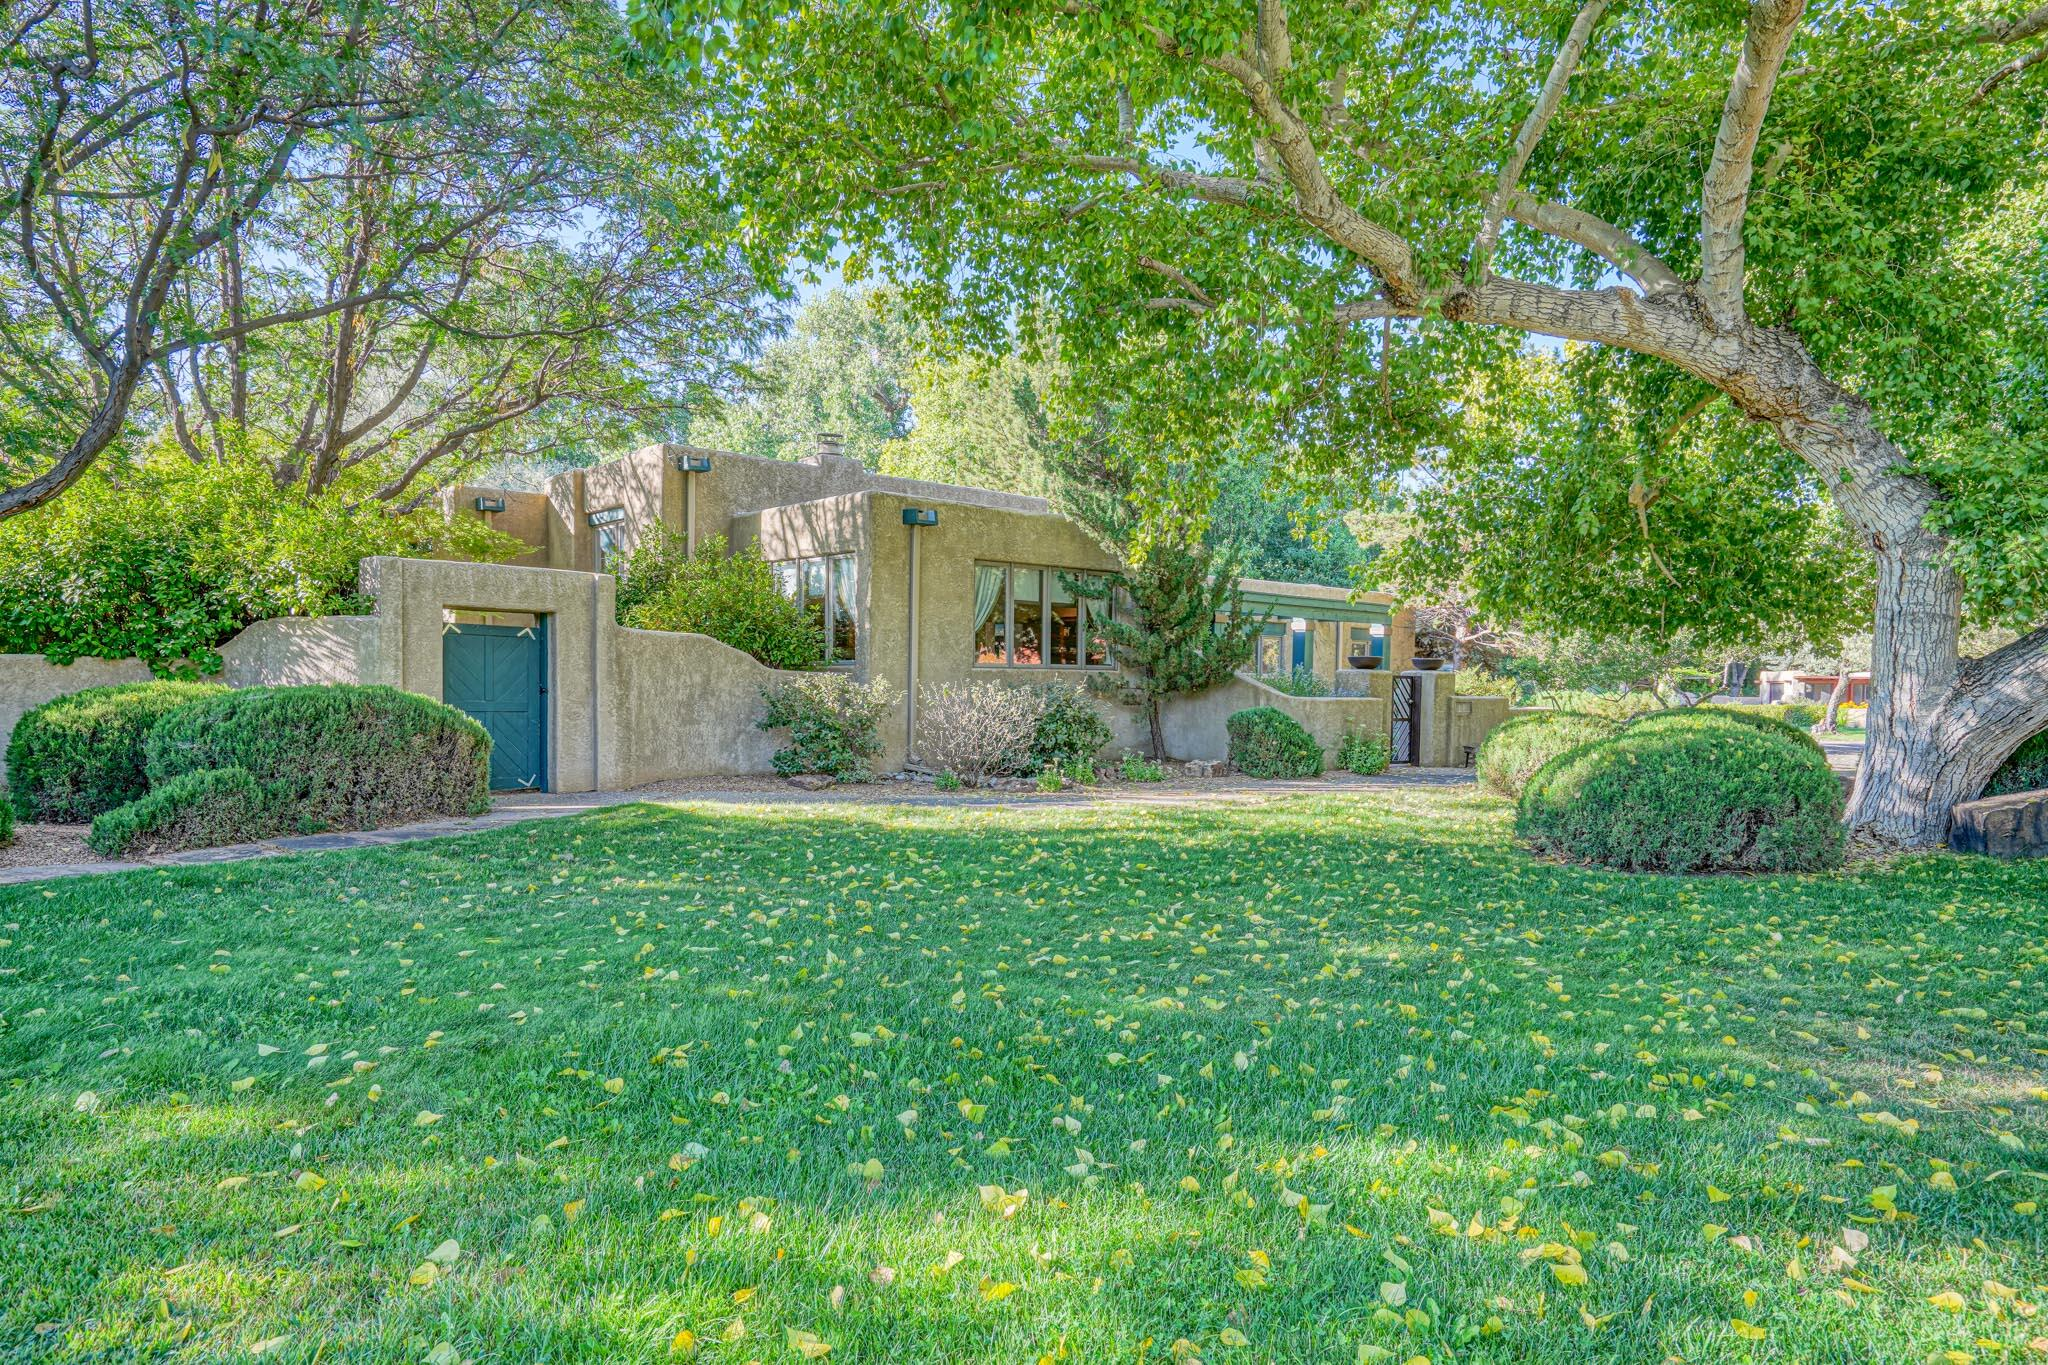 Beautifully refreshed one level oasis on idyllic acre in coveted Tinnin Farms Neighborhood of Los Ranchos de Albuquerque. Perfect cul de sac location, steps away to miles of Bosque trails, Rio Grande River and Los Ranchos Farmers Market. Stunning updated owner's retreat. High ceilings, open spaces & warm cozy spaces. 3 bedrms, full office and flex room. New since 2016: hardwood & brick floors, entire interior painted, new SBS roof & skylights, 2 new aero-coolers, new boiler for warm floors in winter. Nestled amidst private lush mature irrigation 'well' watered trees and lawns. Great Indoor outdoor flow beckons you to private courtyards and a 'botanical garden' experience of paths, hummingbirds, wildlife, pergola, rose garden, fruit trees and rock waterfall.  Many more details attached.